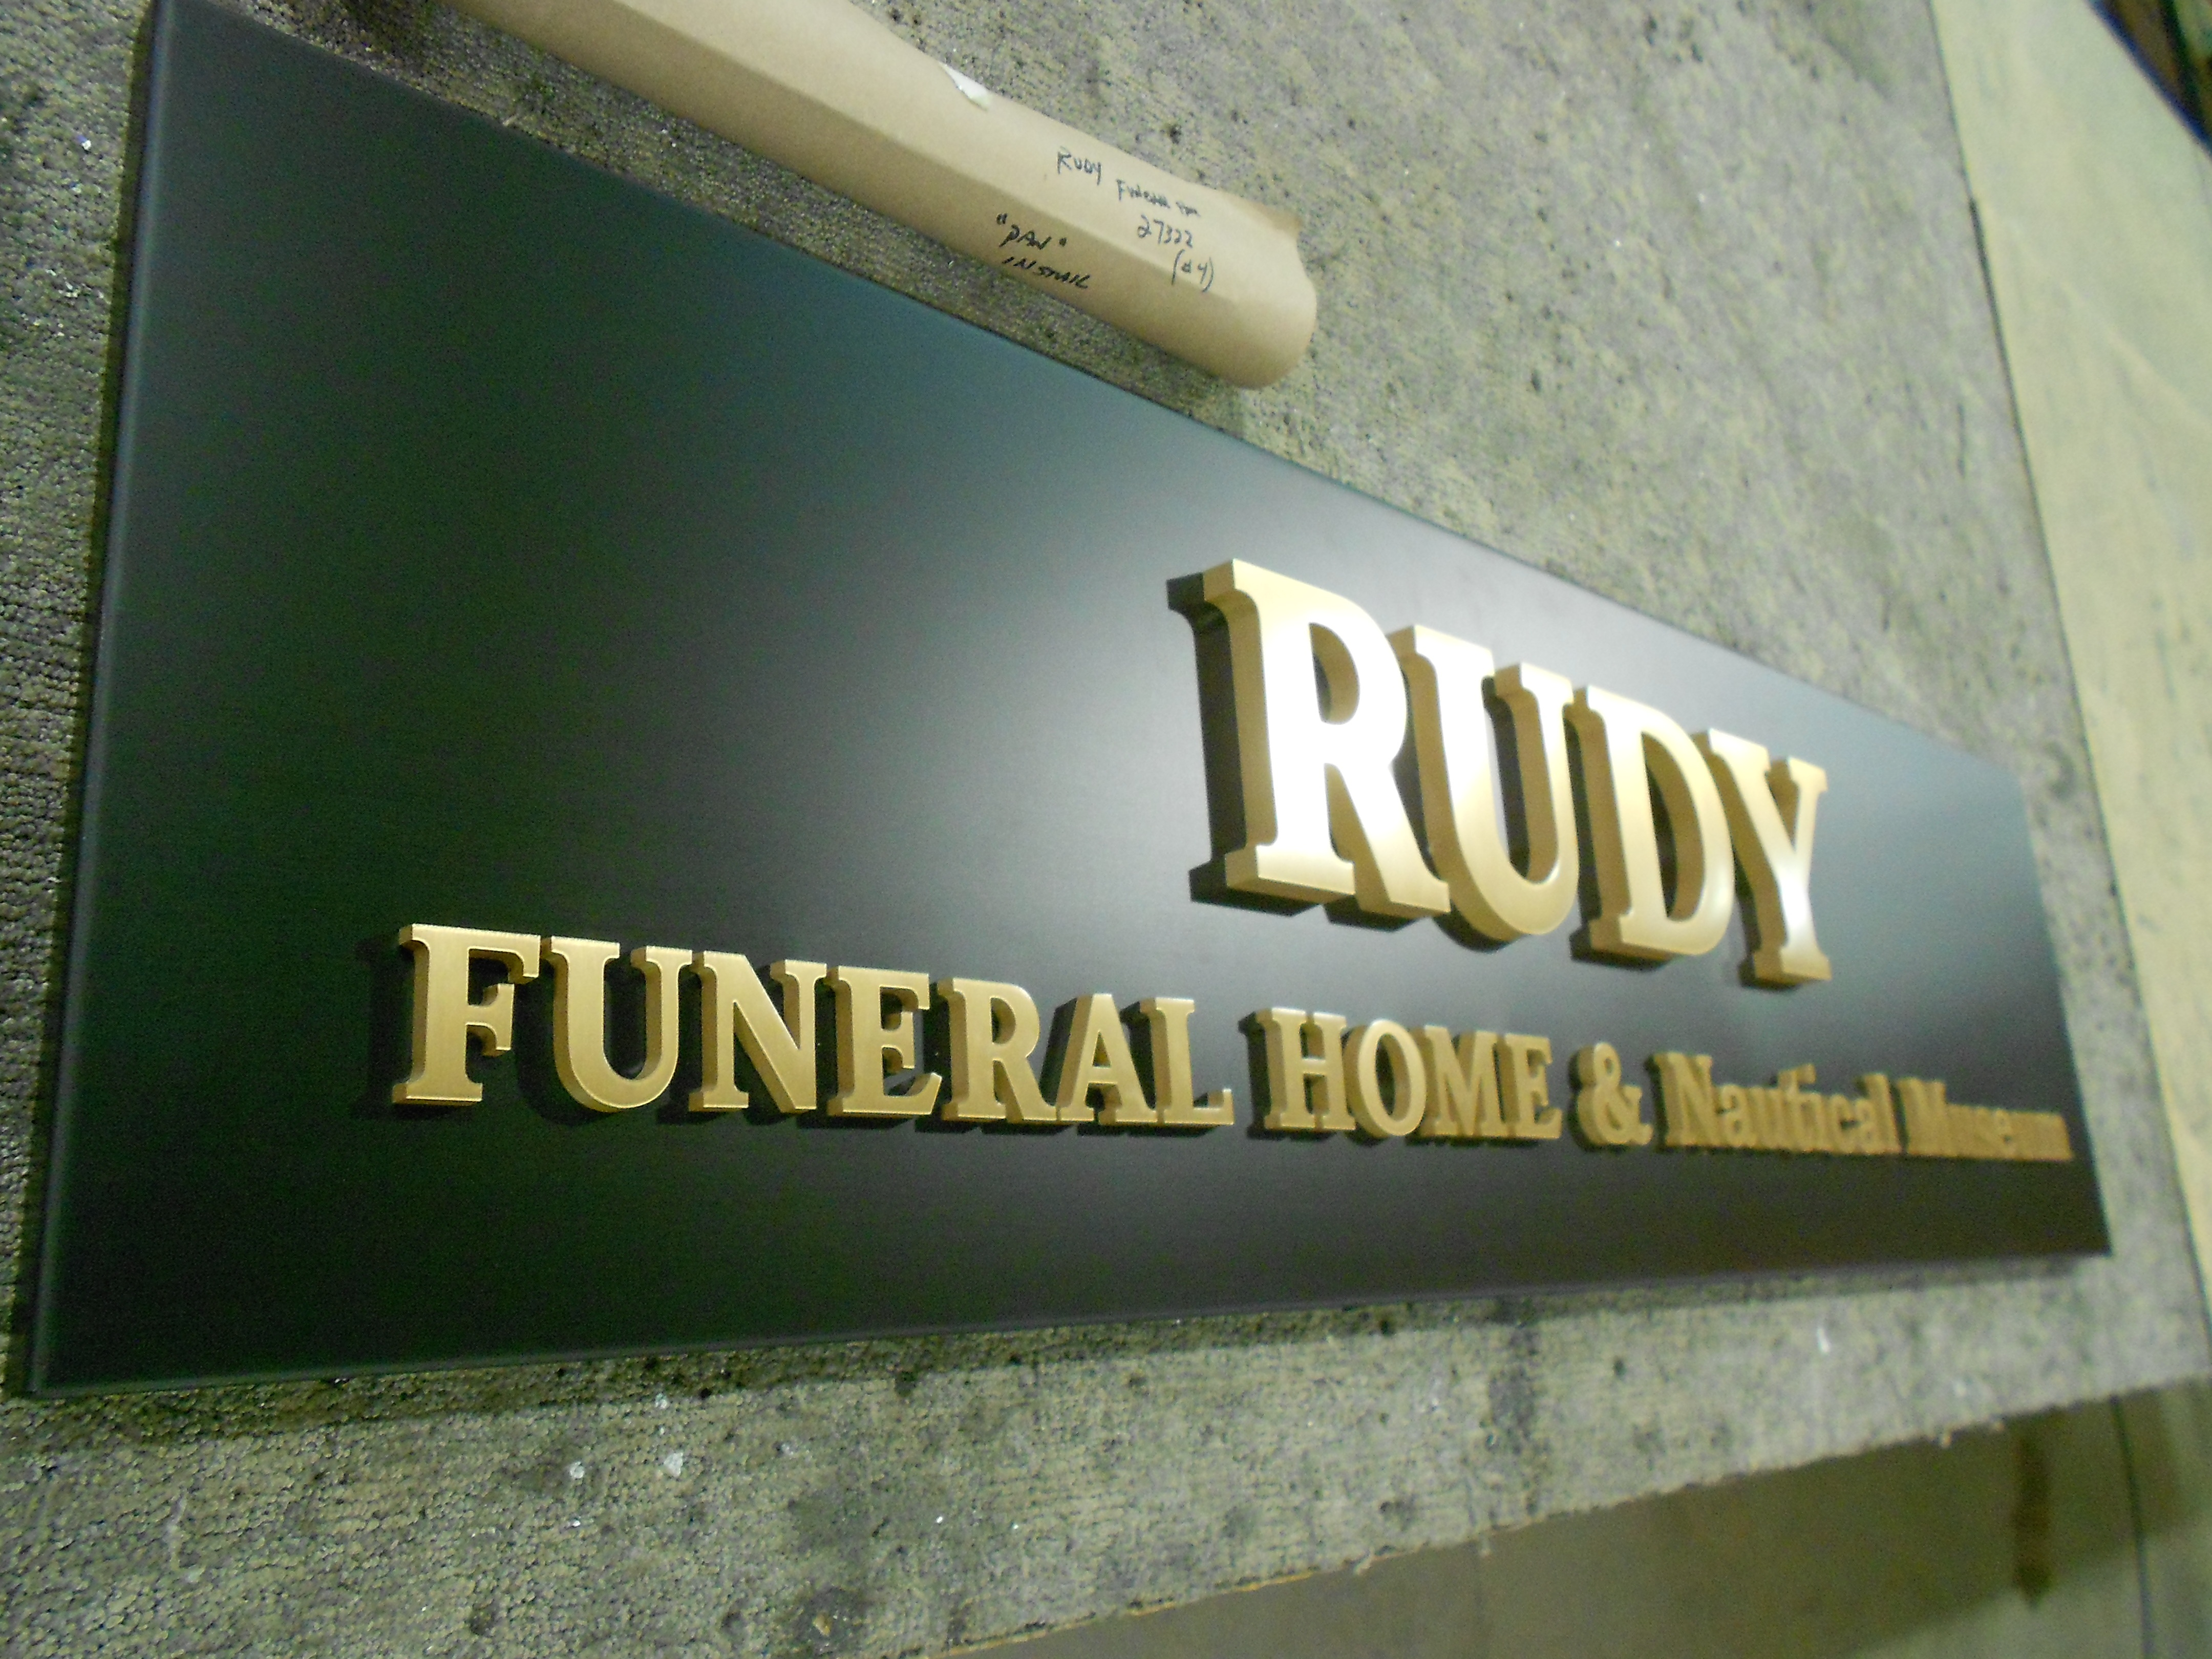 Rudy Funeral Home